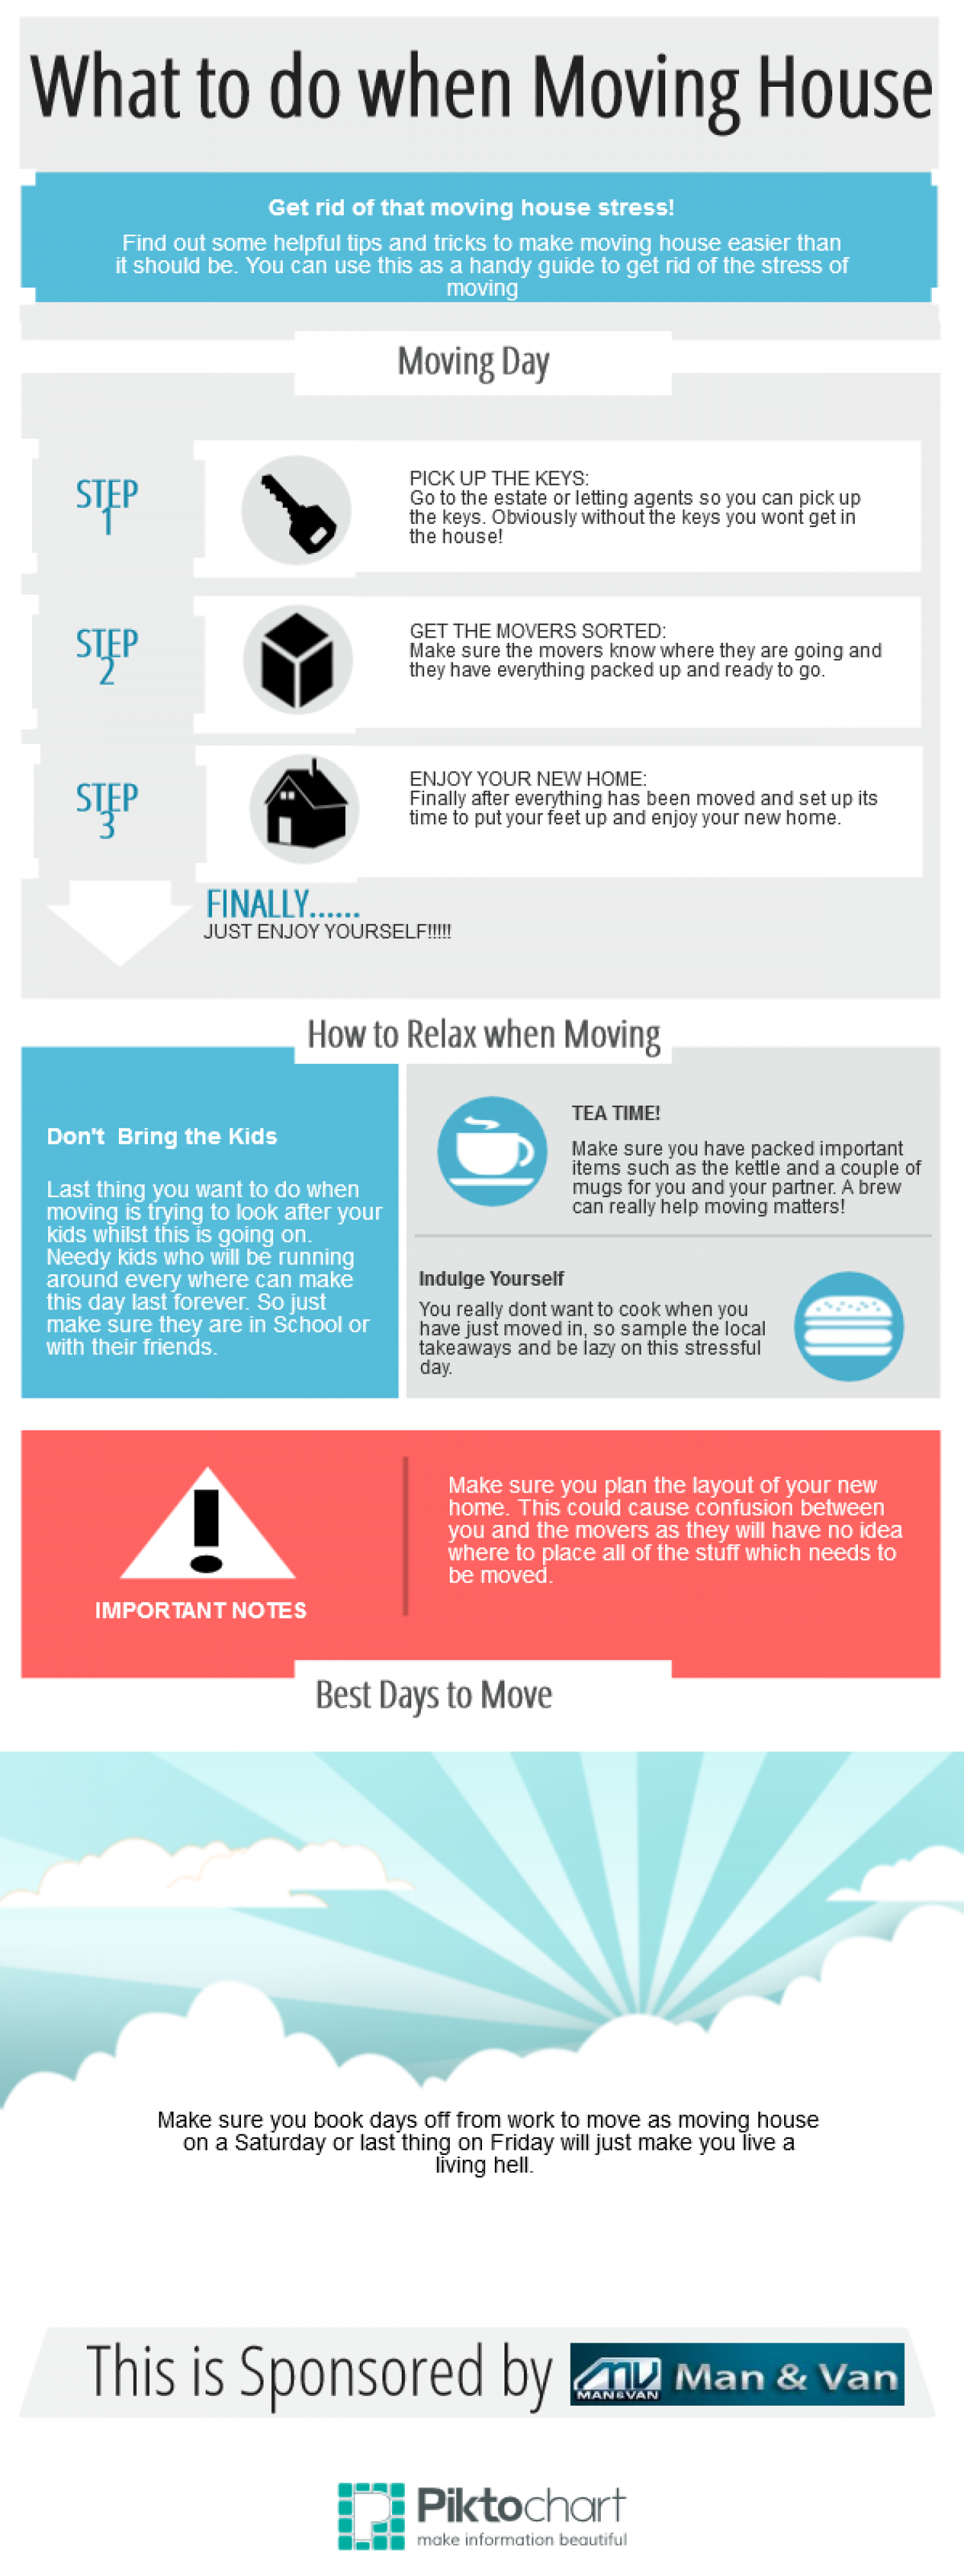 What to do When Moving House Infographic